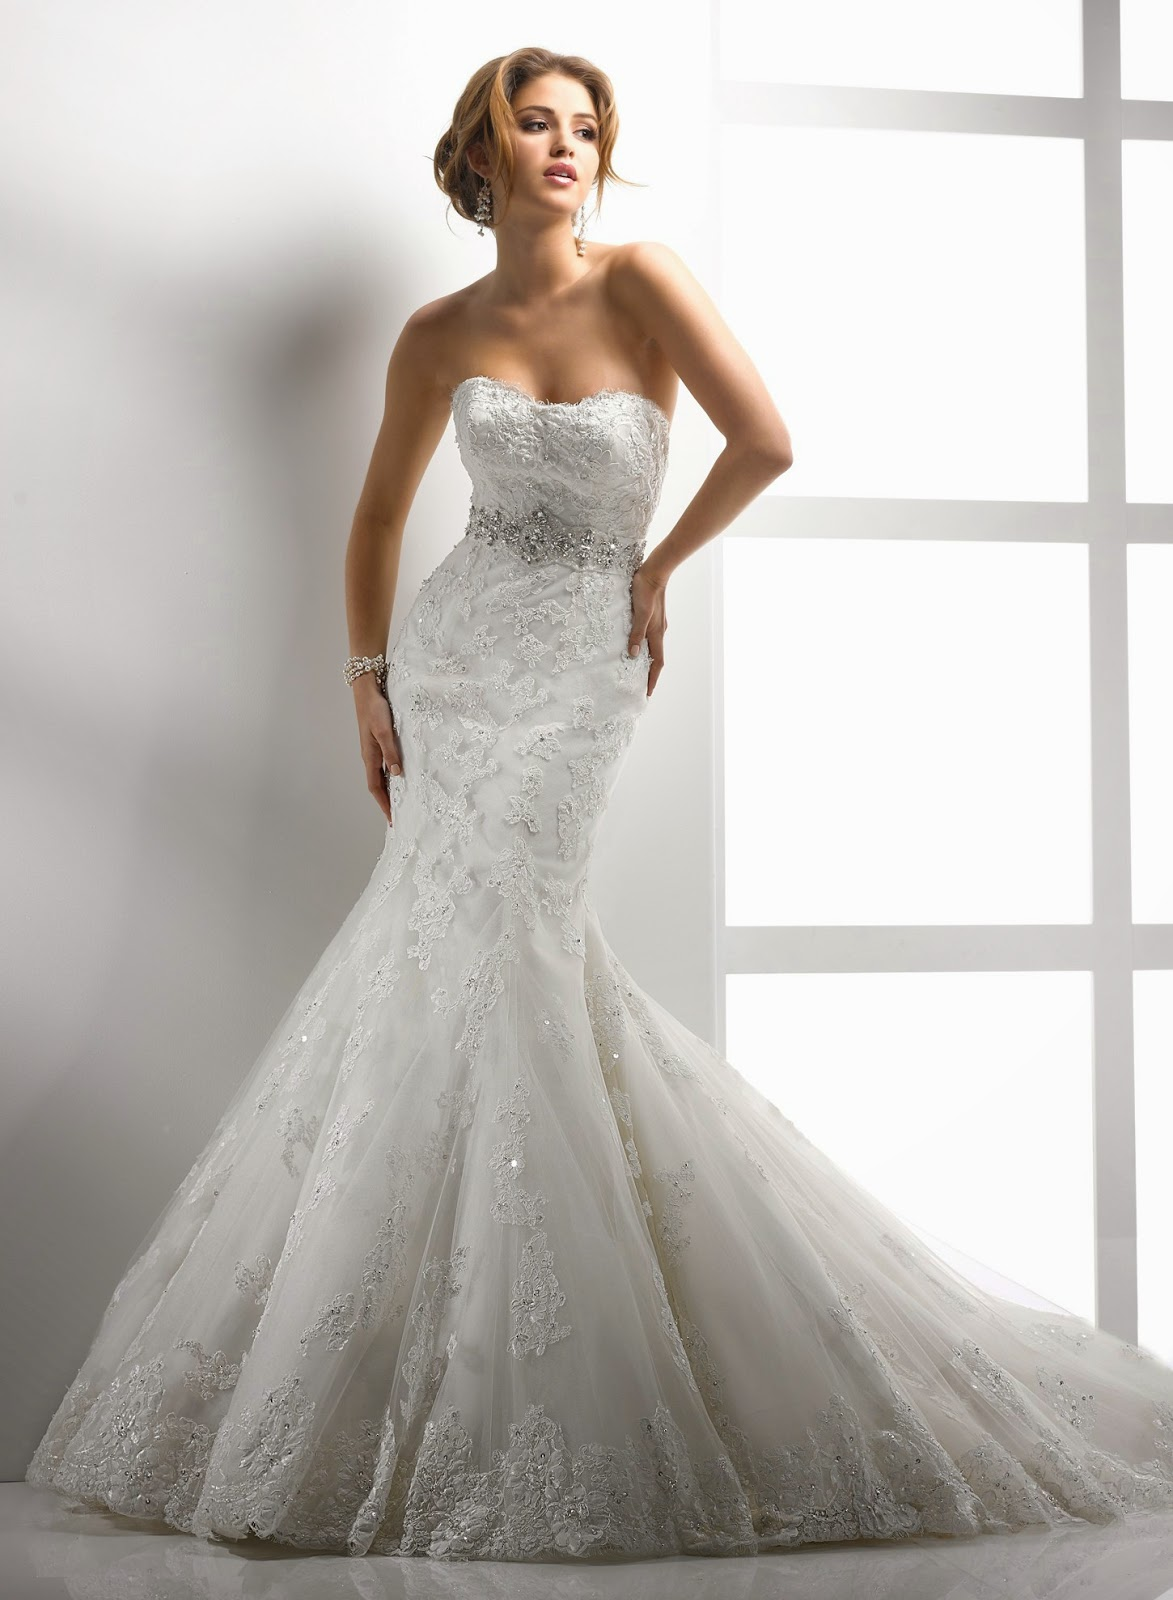 A Trumpet Style Wedding Dresses While Similar To Mermaid Gowns Is More Understated Silhouette As The Flare Of Skirt